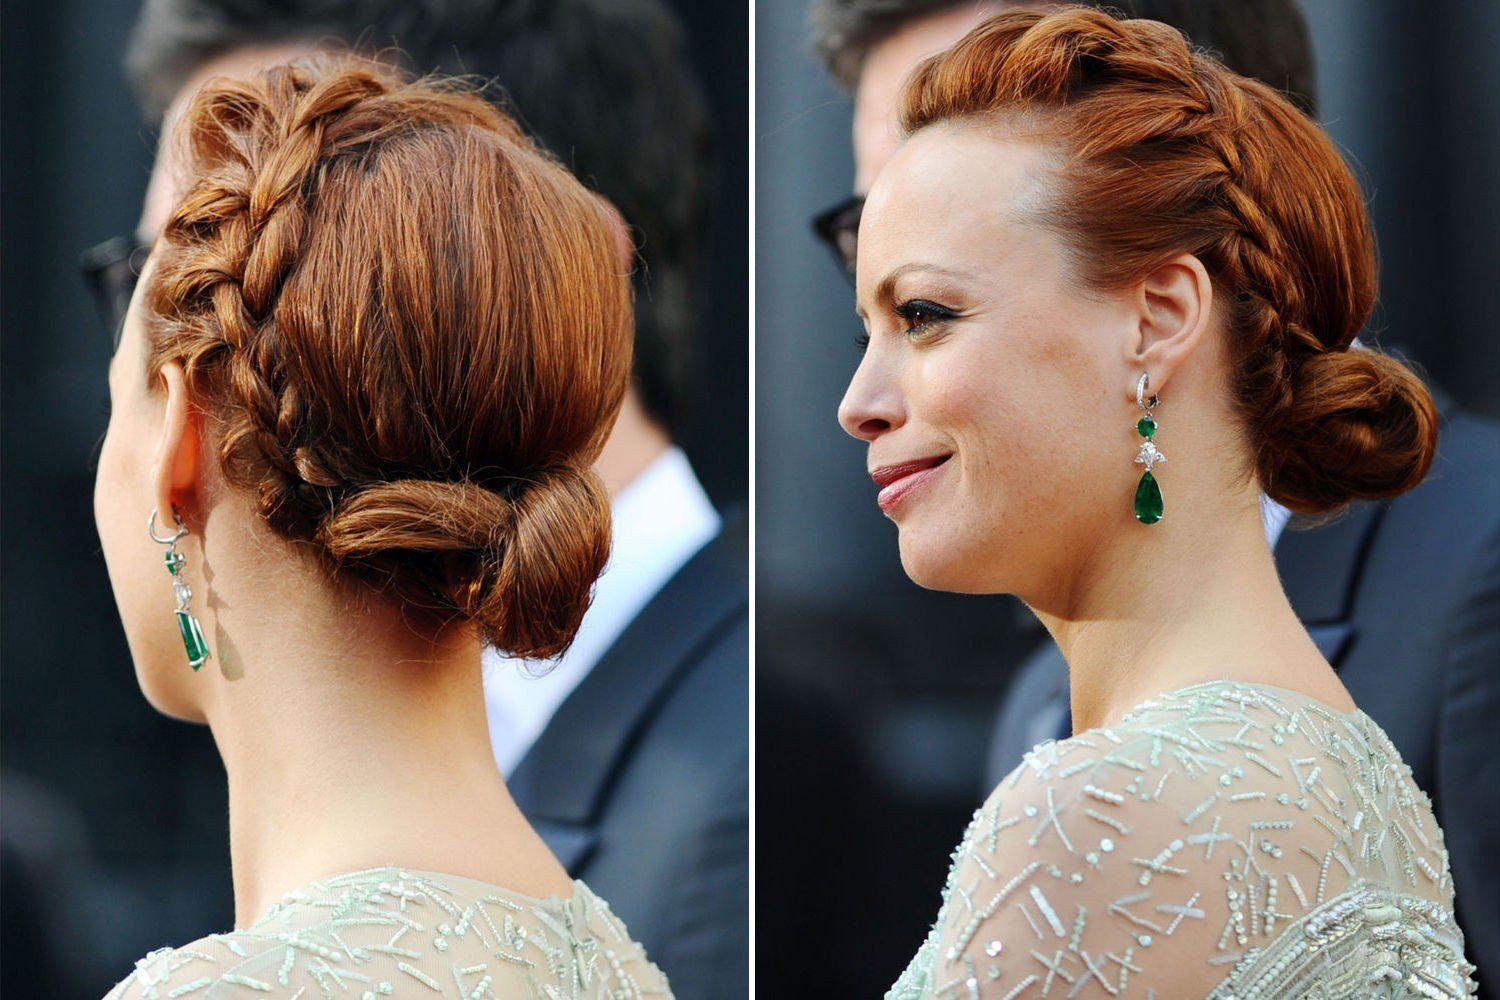 The Best 25 Of The Best Oscar Hairstyles Ever Glamour Pictures